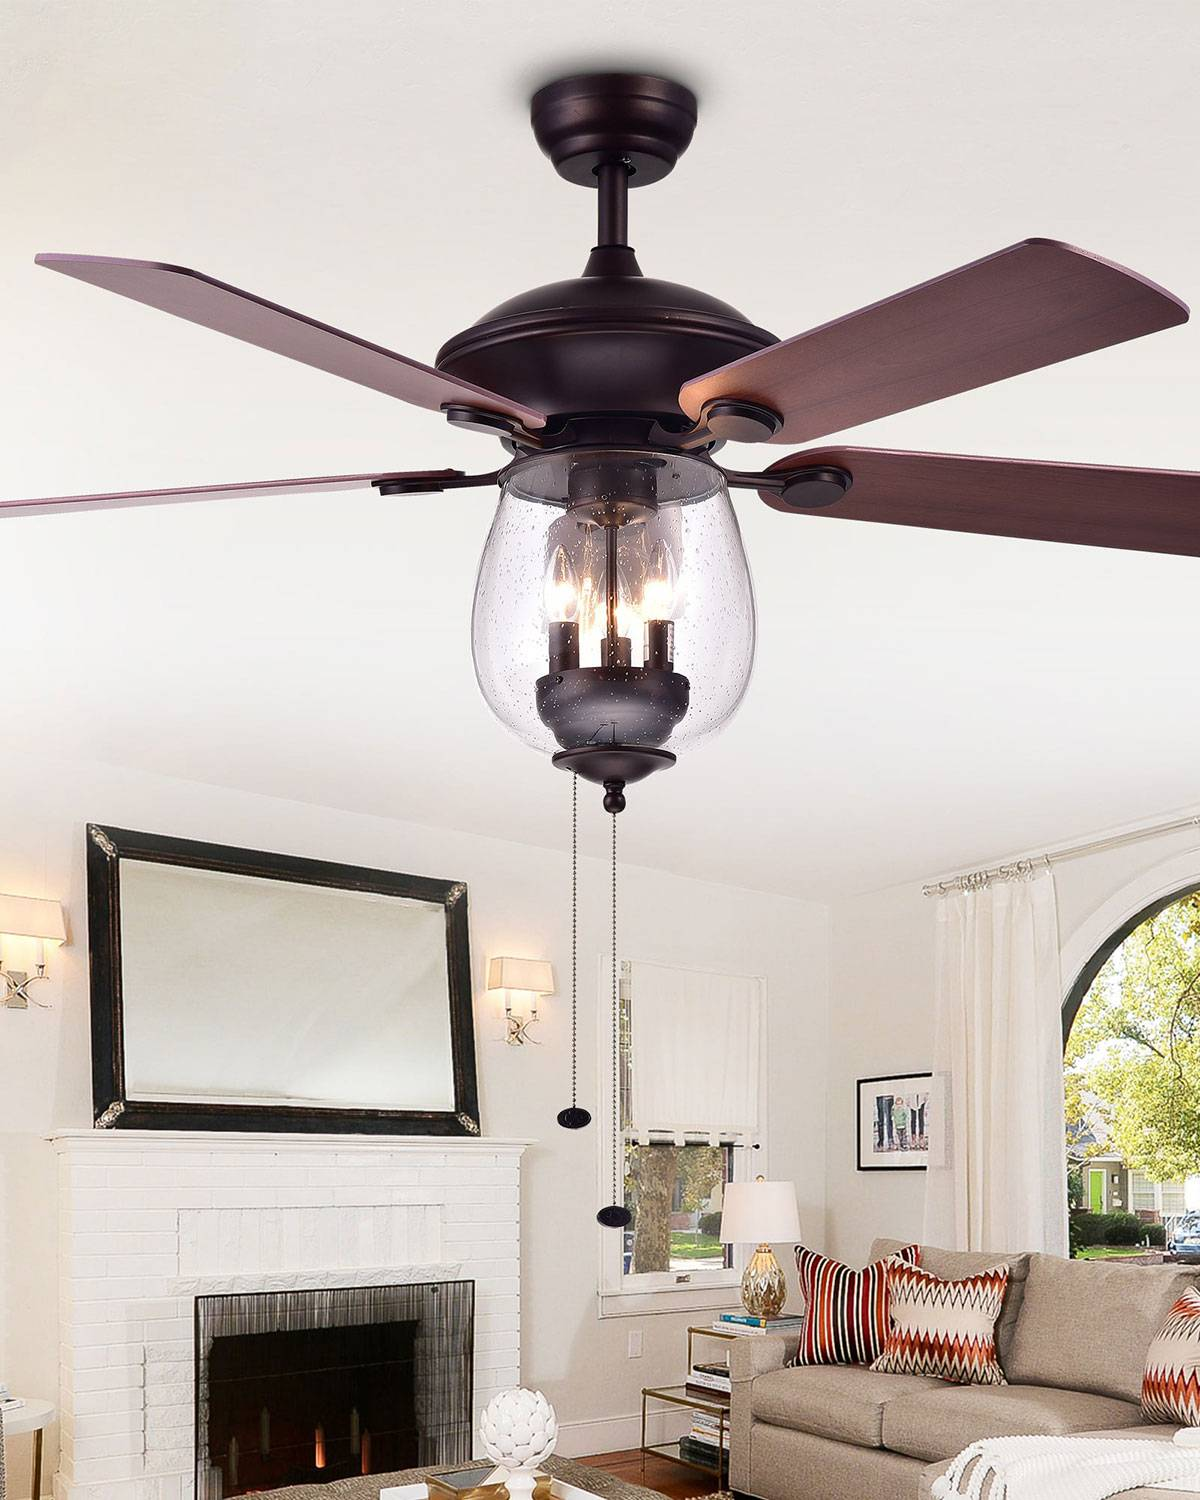 Home Accessories Seeded Glass Bowl Chandelier Ceiling Fan